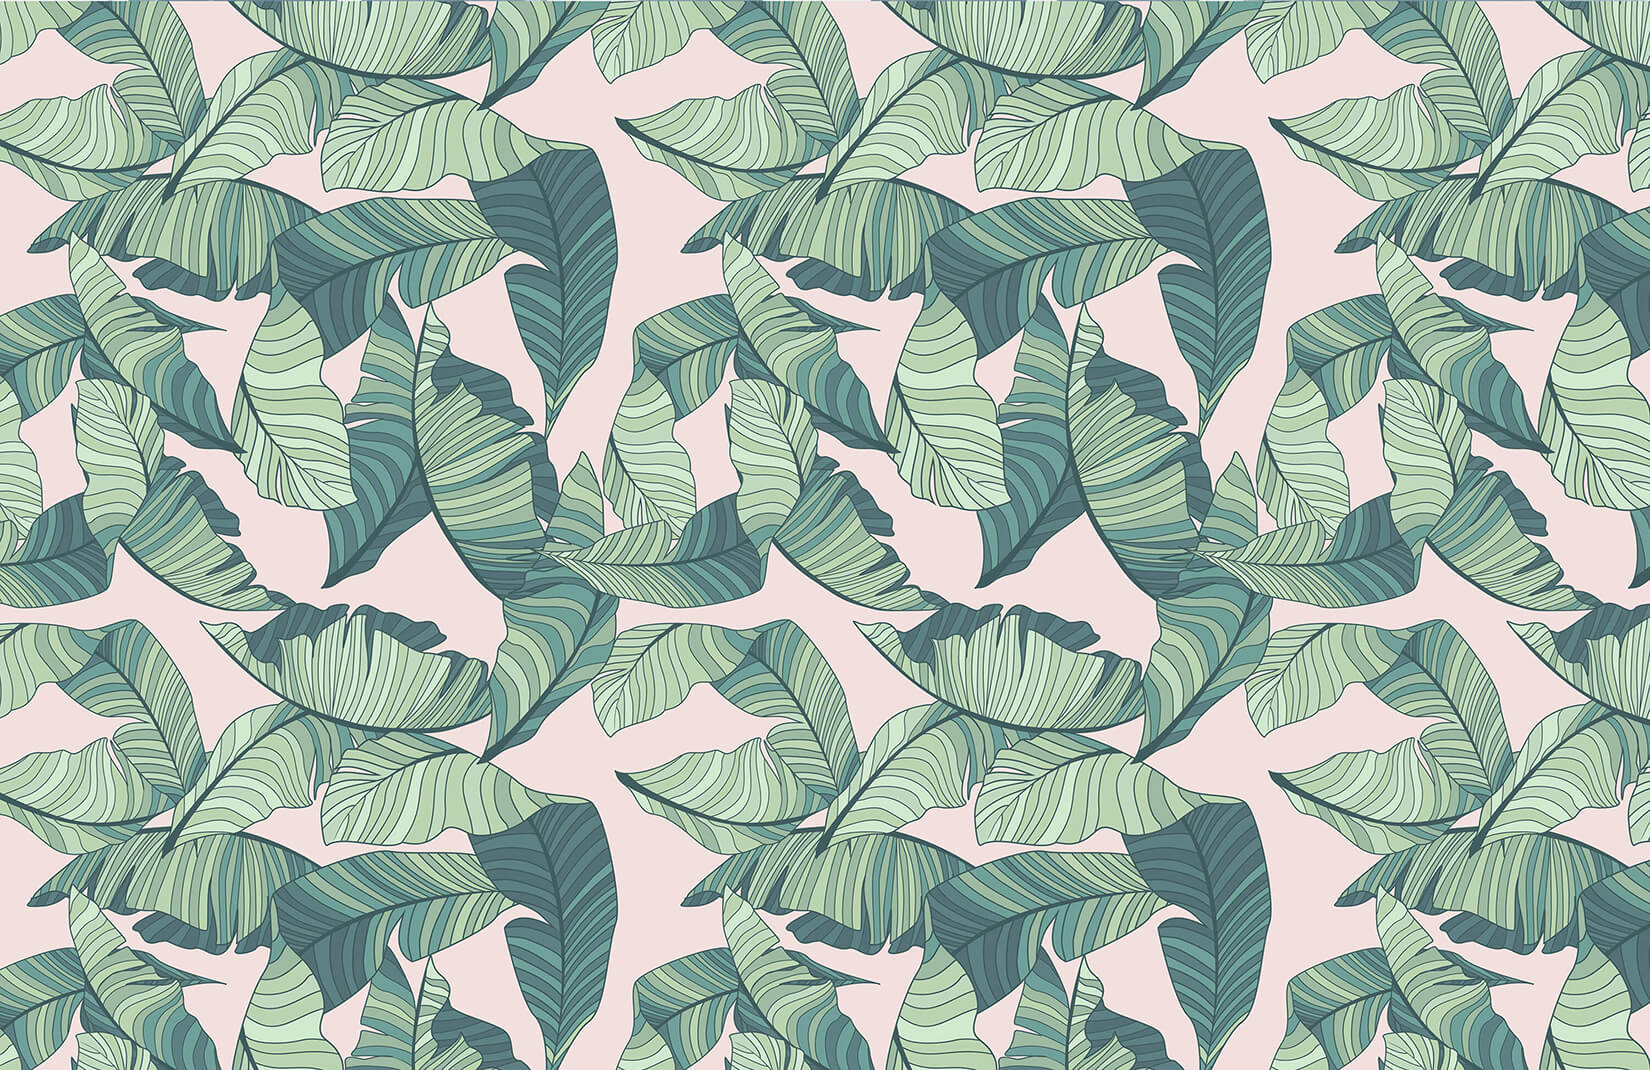 Pink And Green Tropical Leaf 116200 Hd Wallpaper